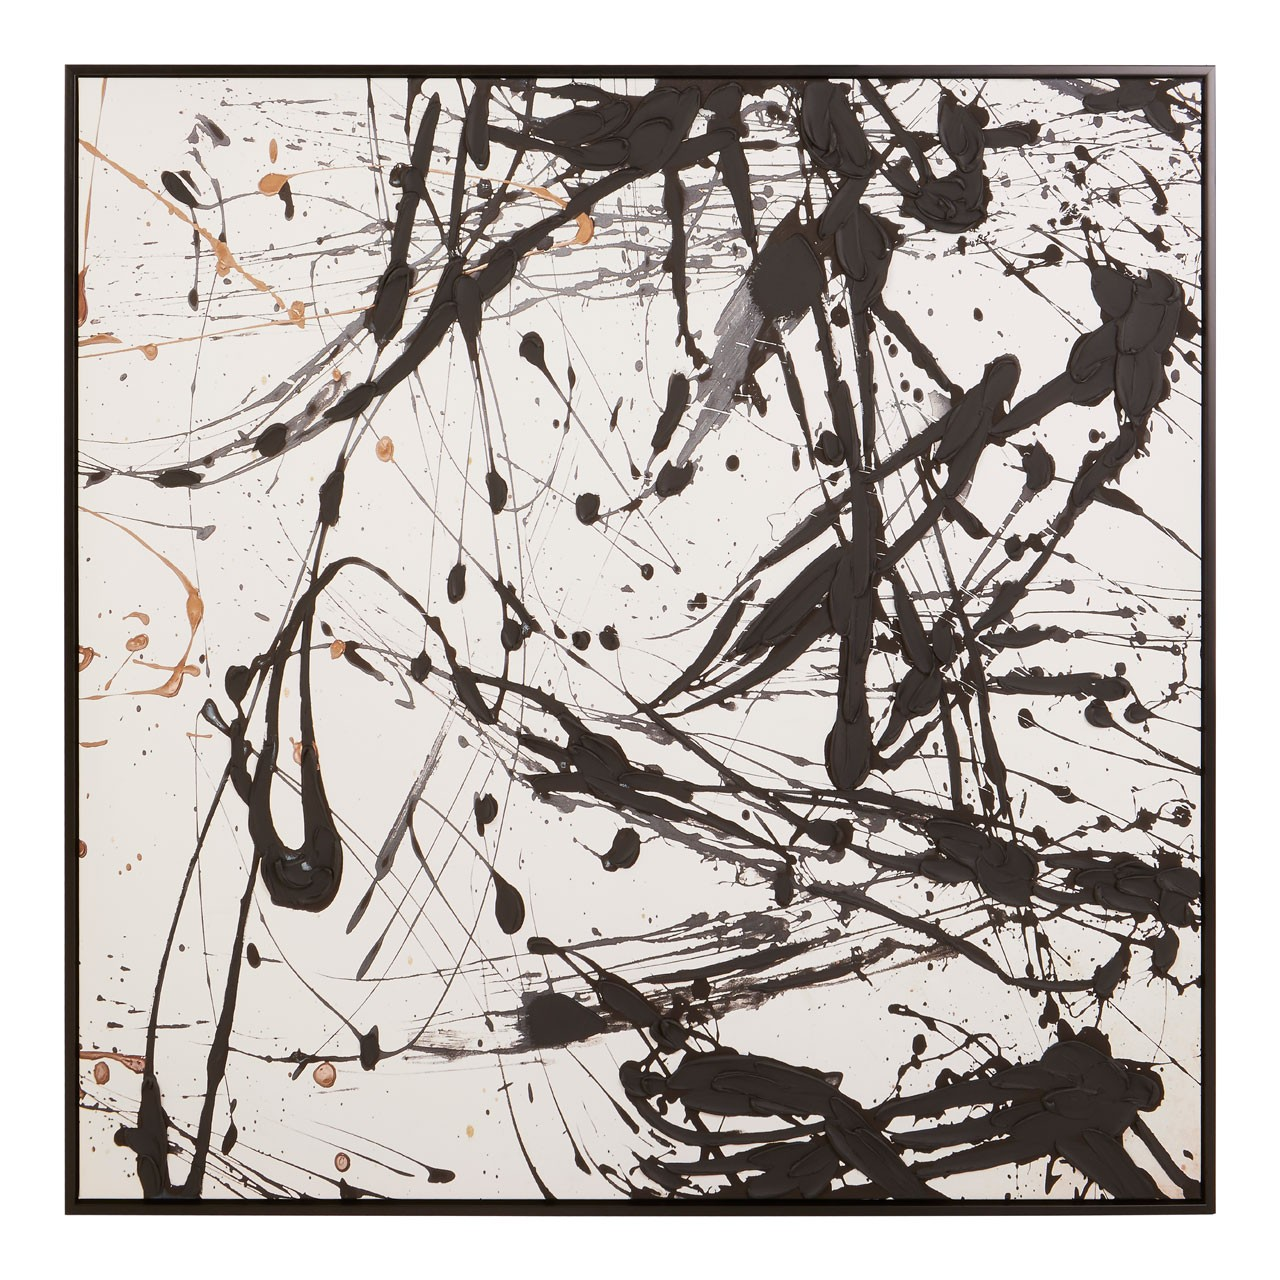 Astratto Oil Painting, Black / White